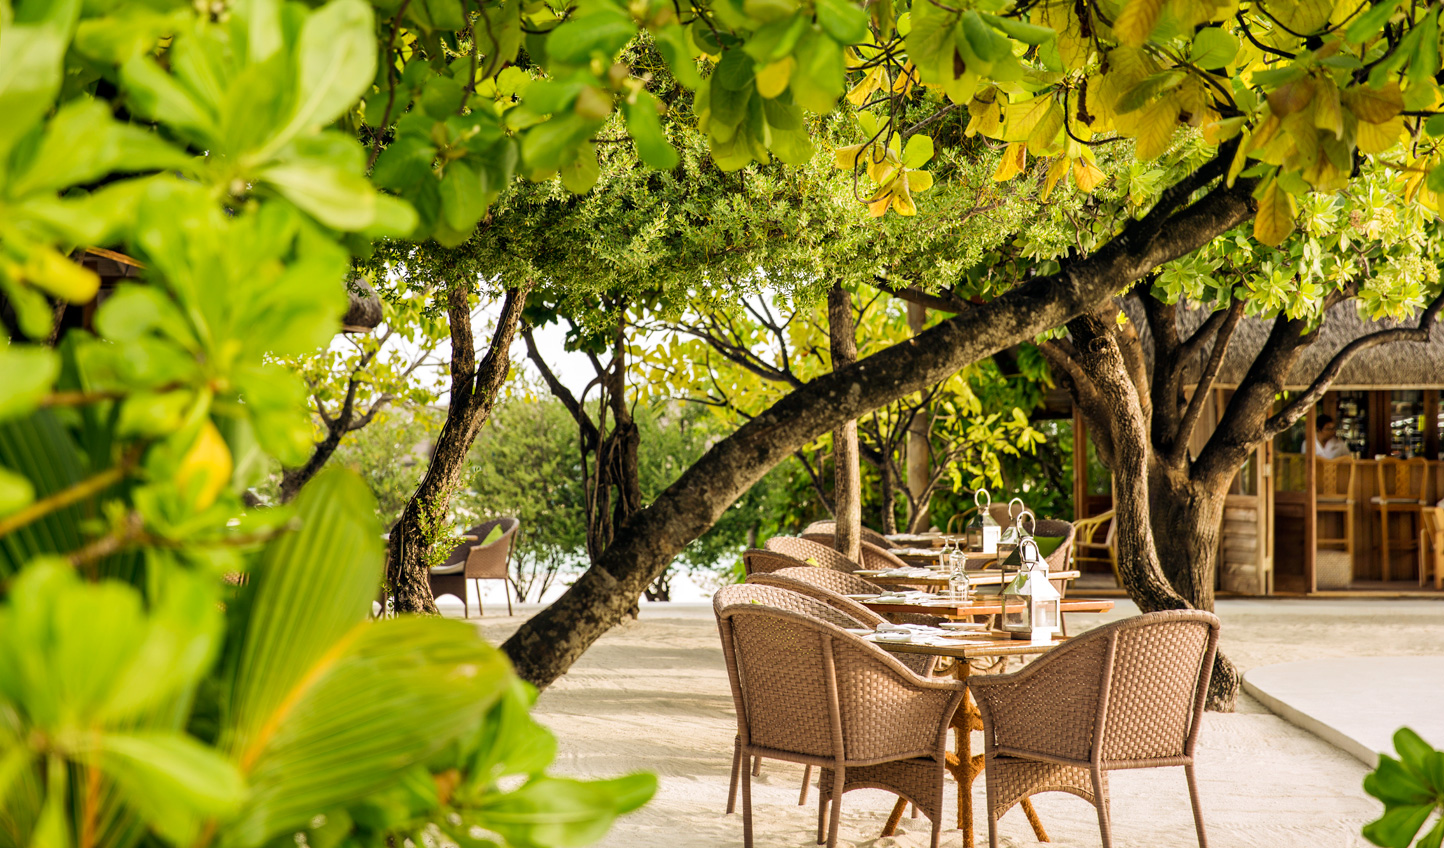 Dine beneath the shade of the canopy